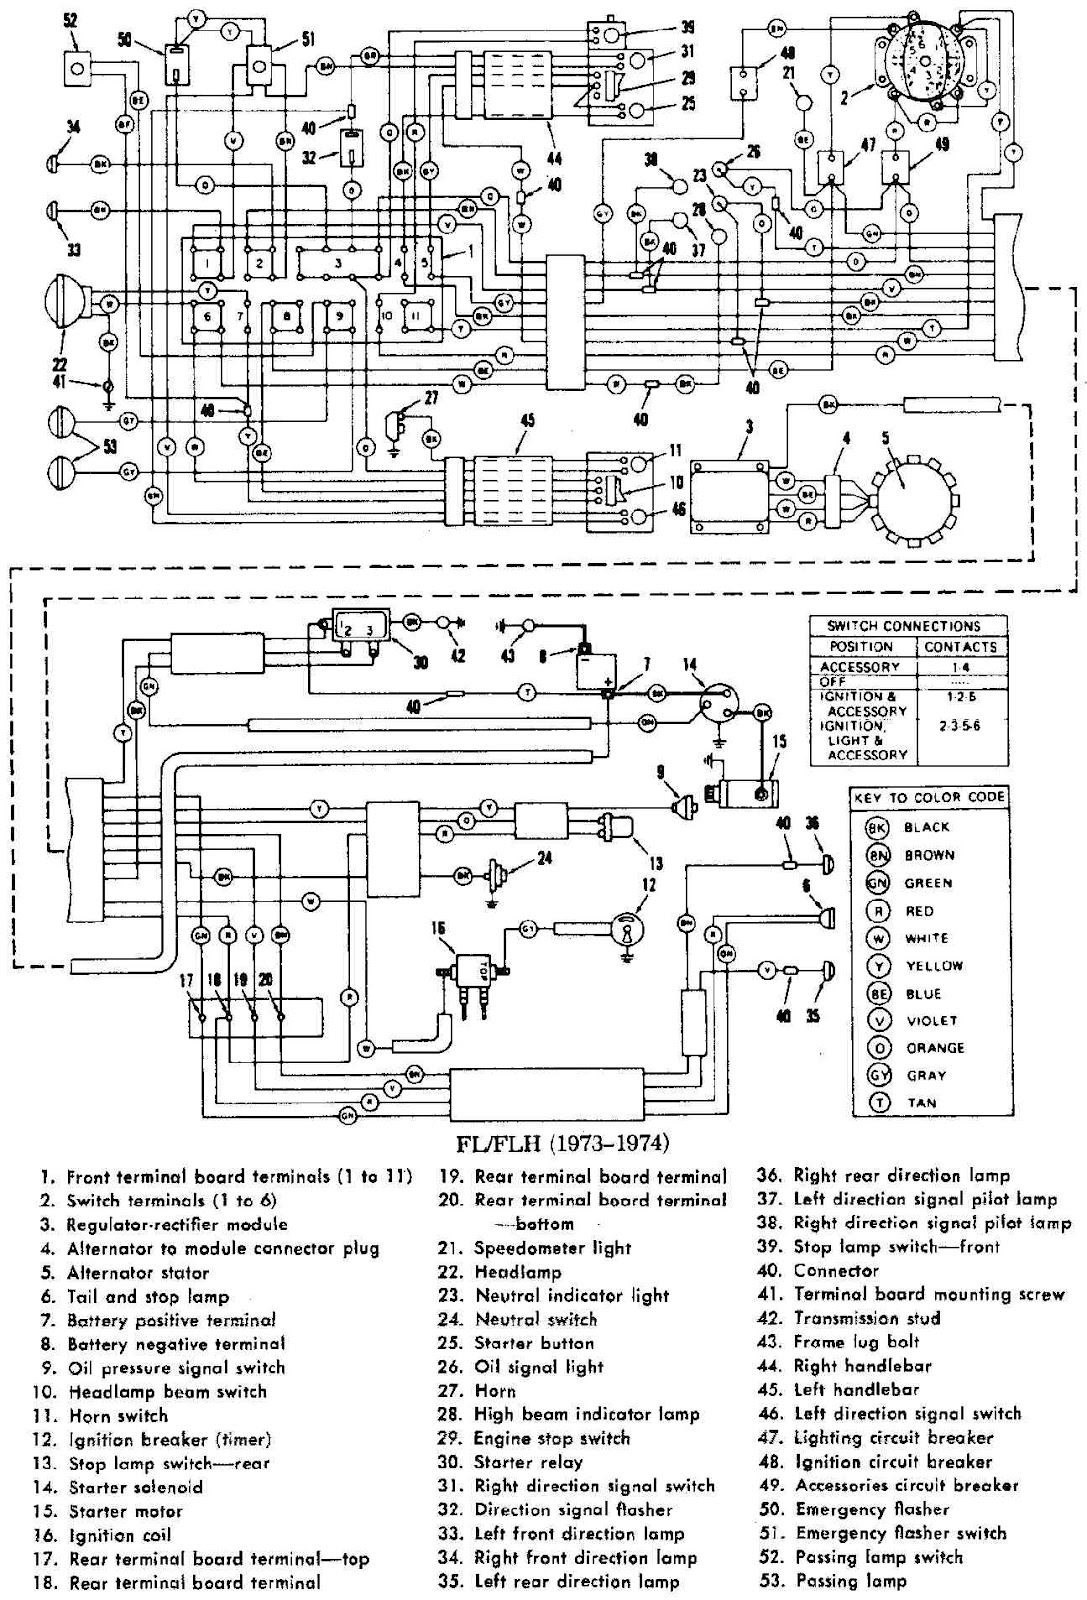 Harley Starter Relay Wiring Diagram on harley ignition switch diagram, harley wiring diagram for dummies, ironhead harley starter wiring diagram, starter kill relay diagram, harley davidson starter relay, harley-davidson starter diagram, harley sportster transmission diagram, harley starter breakdown, harley coil wiring diagram, chevy starter relay diagram, harley electra glide wiring harness diagram, harley-davidson sportster clutch diagram, remote starter installation diagram, harley starter installation, harley davidson columbia golf cart, harley softail starter diagram, harley starter relay problems, simple harley wiring diagram, starter relay switch diagram, harley generator wiring diagram,